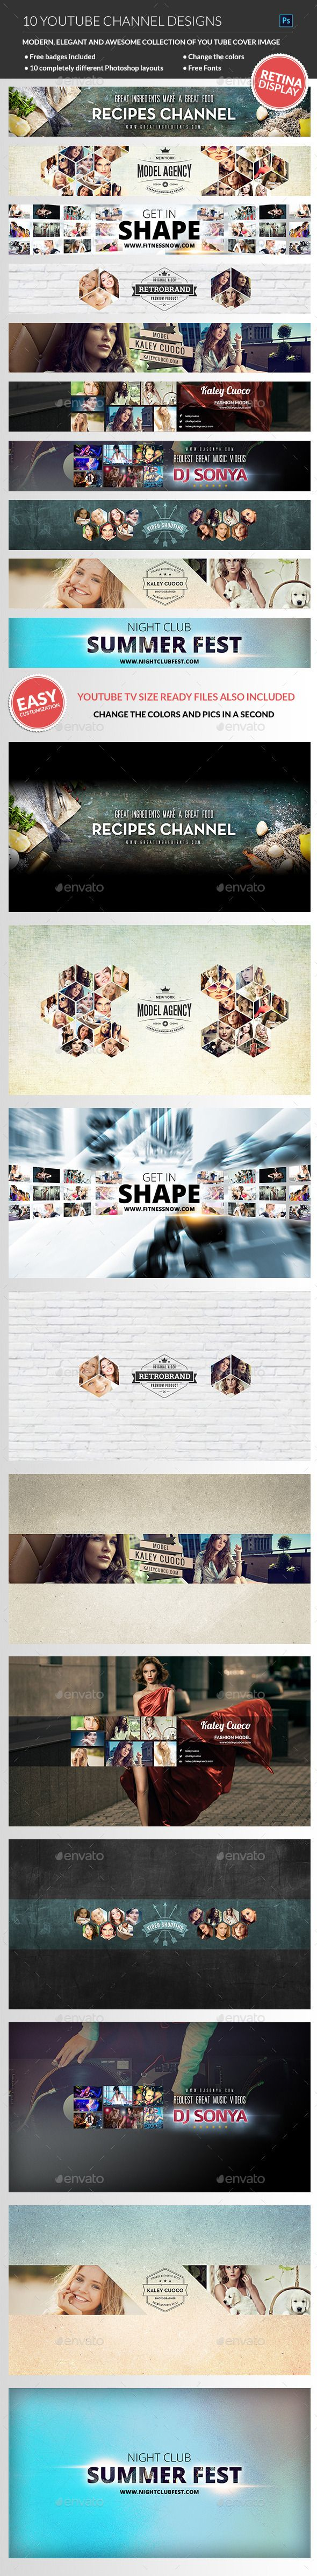 10 Multipurpose YouTube Channel Banners Template PSD. Download here: http://graphicriver.net/item/-10-multipurpose-youtube-channel-banners/11090920?ref=ksioks